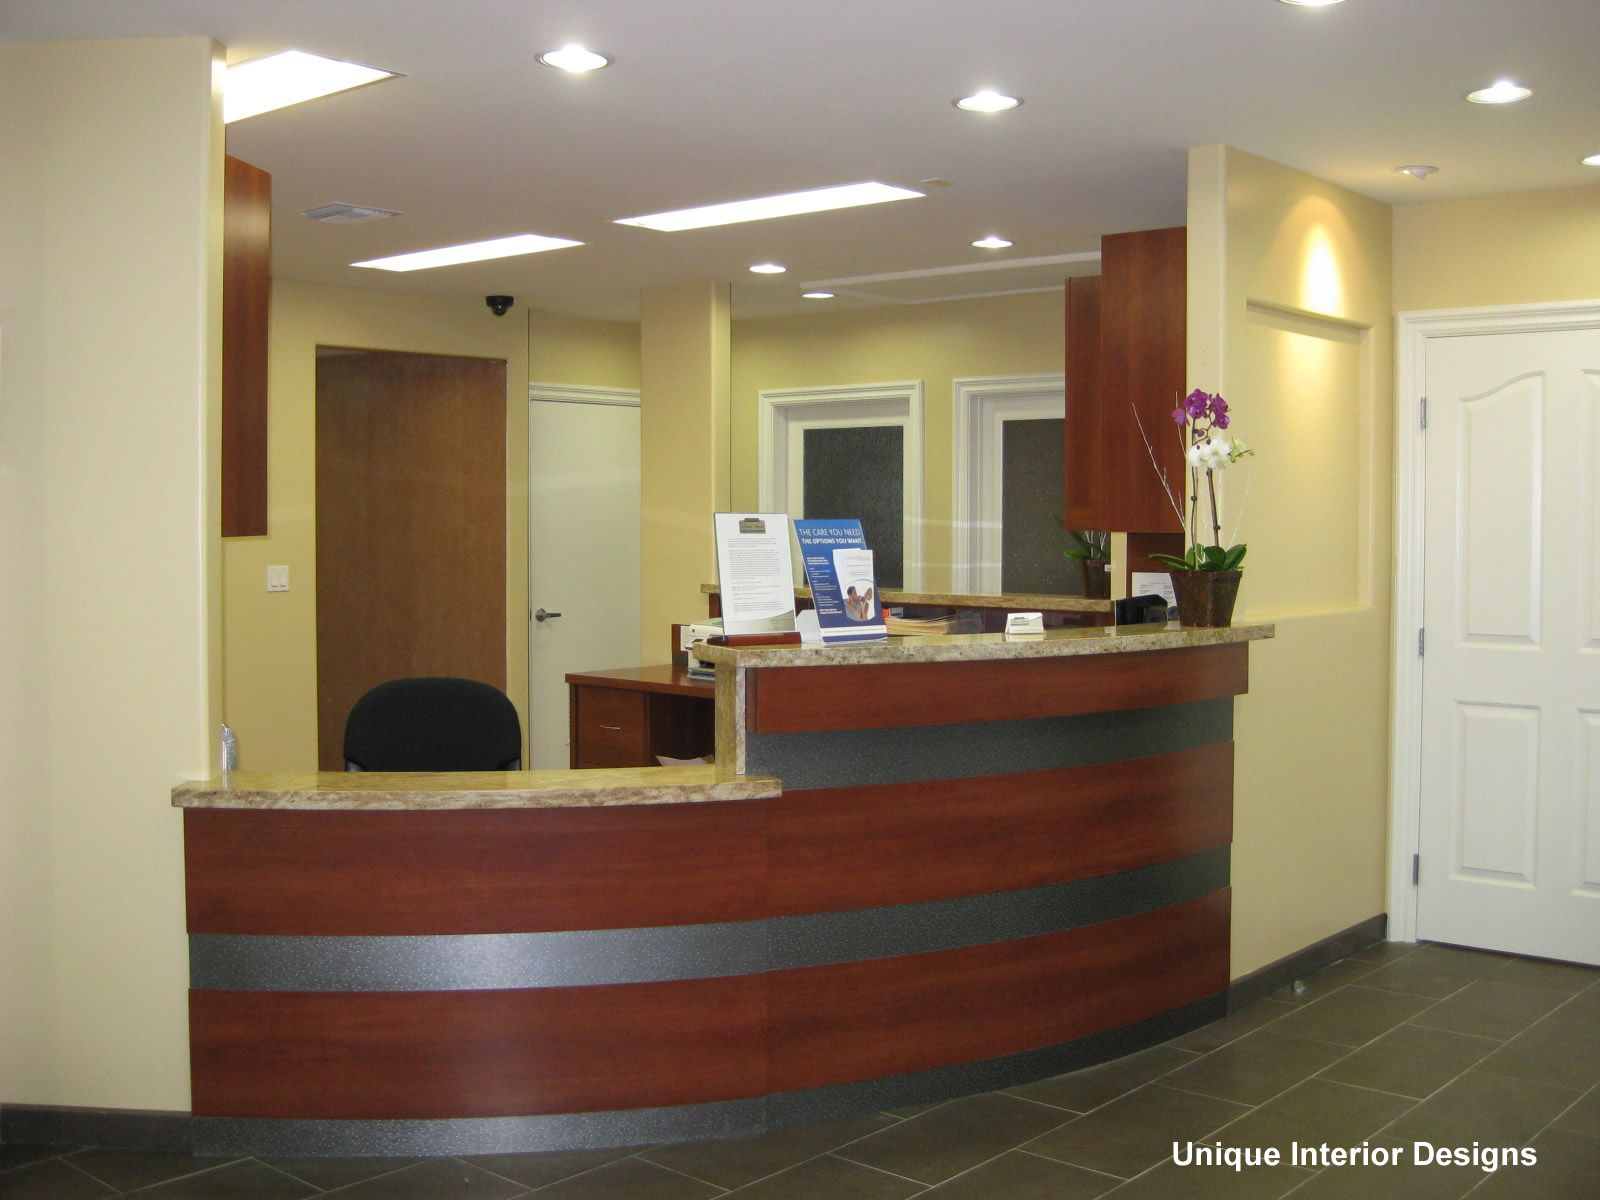 dental-office-interior-design-397 1,600×1,200 pixels | front